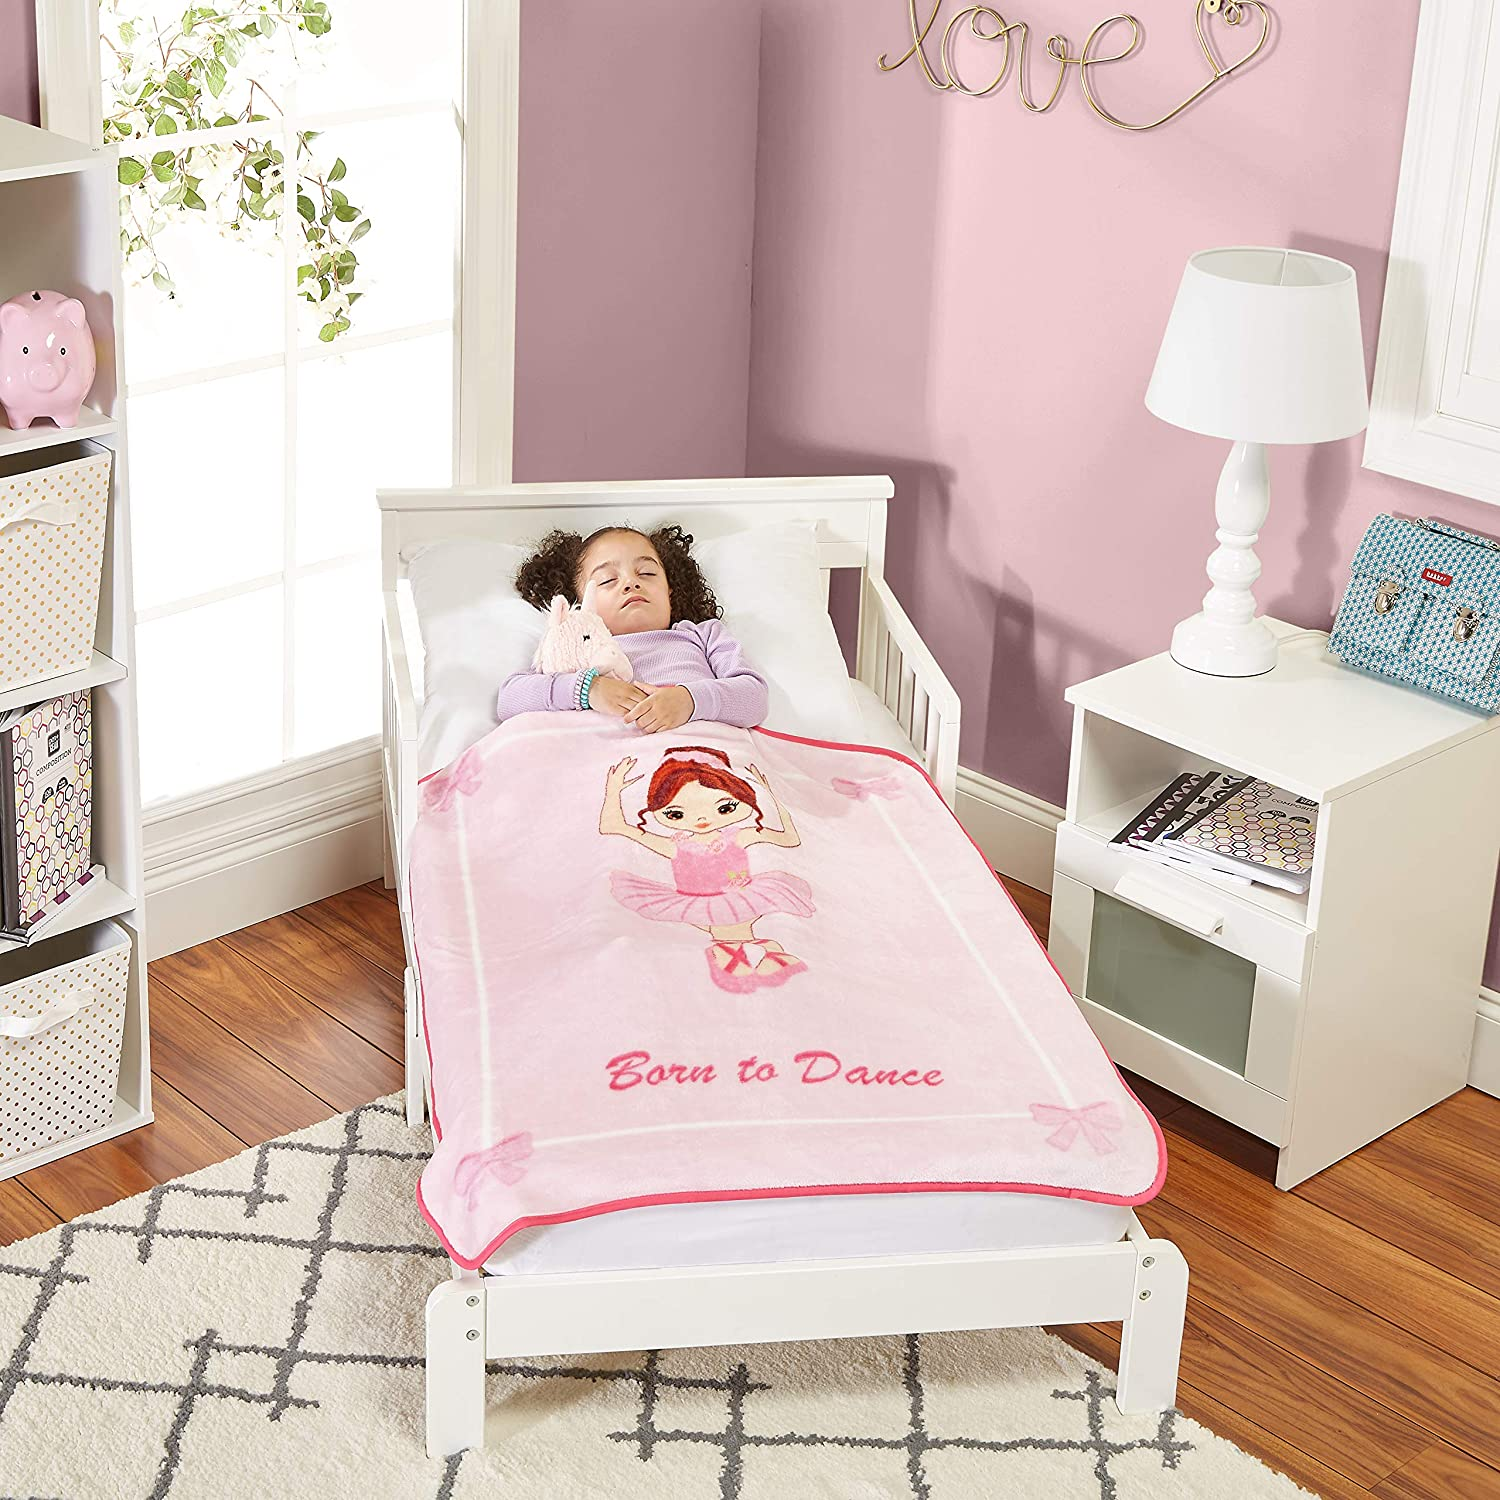 30 by 40 Super Soft Ballerina Born to Dance Toddler Throw Blanket Plush Warm and Comfortable